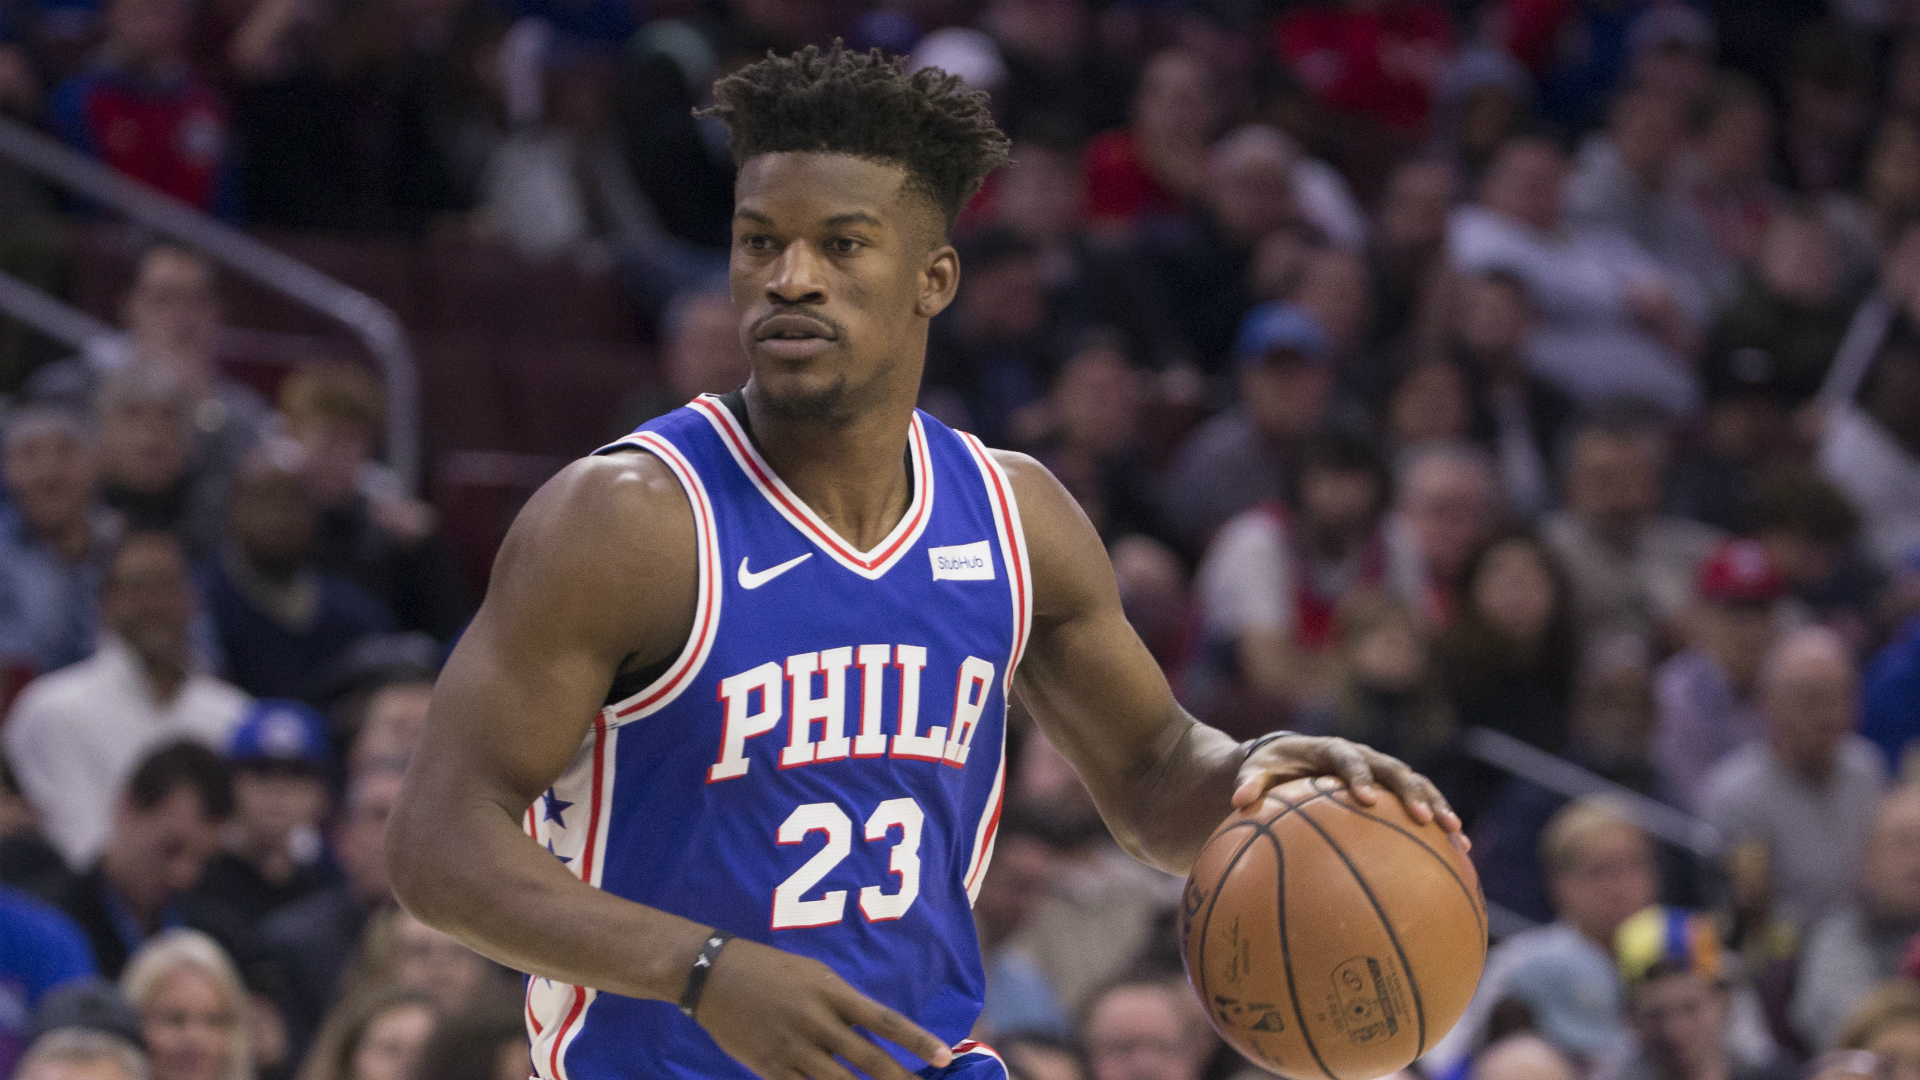 Jimmy Butler hits another game-winner for 76ers to top Nets